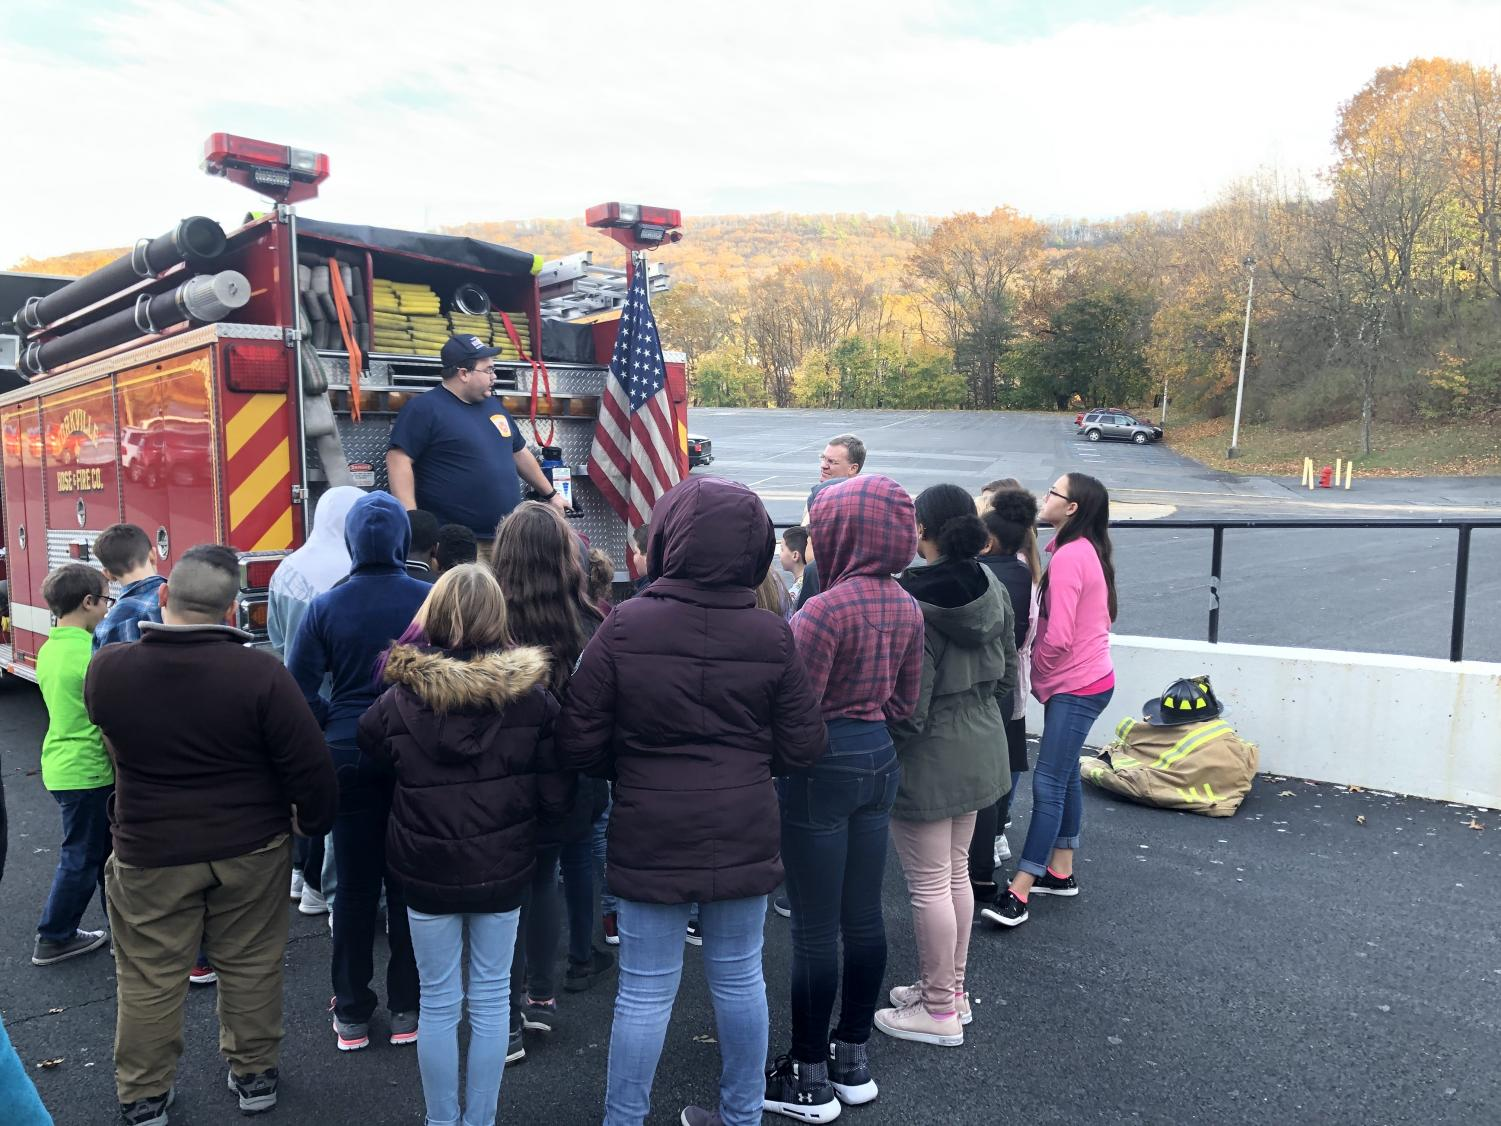 TOUR - Students at the Schuylkill Achieve after school program learn about fire safety and are given a firetruck tour by Lt. Dan Kleeman and Dr. Zwiebel from Yorkville Hose Company.